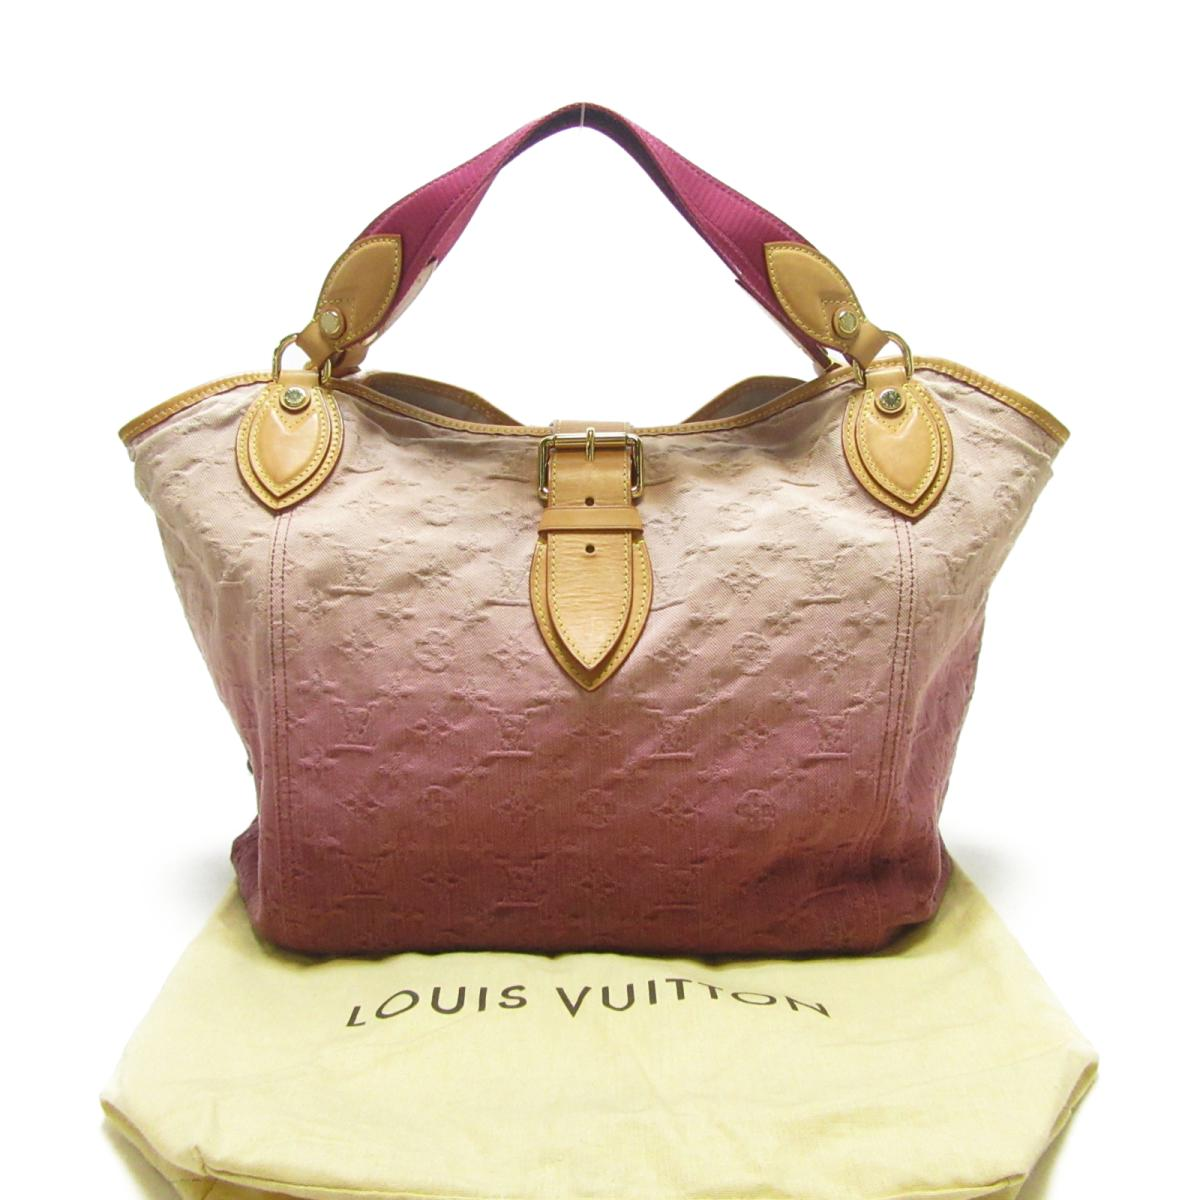 LOUIS VUITTON バッグ M40415 Sunbeam 粉色漸層手提包 M40415